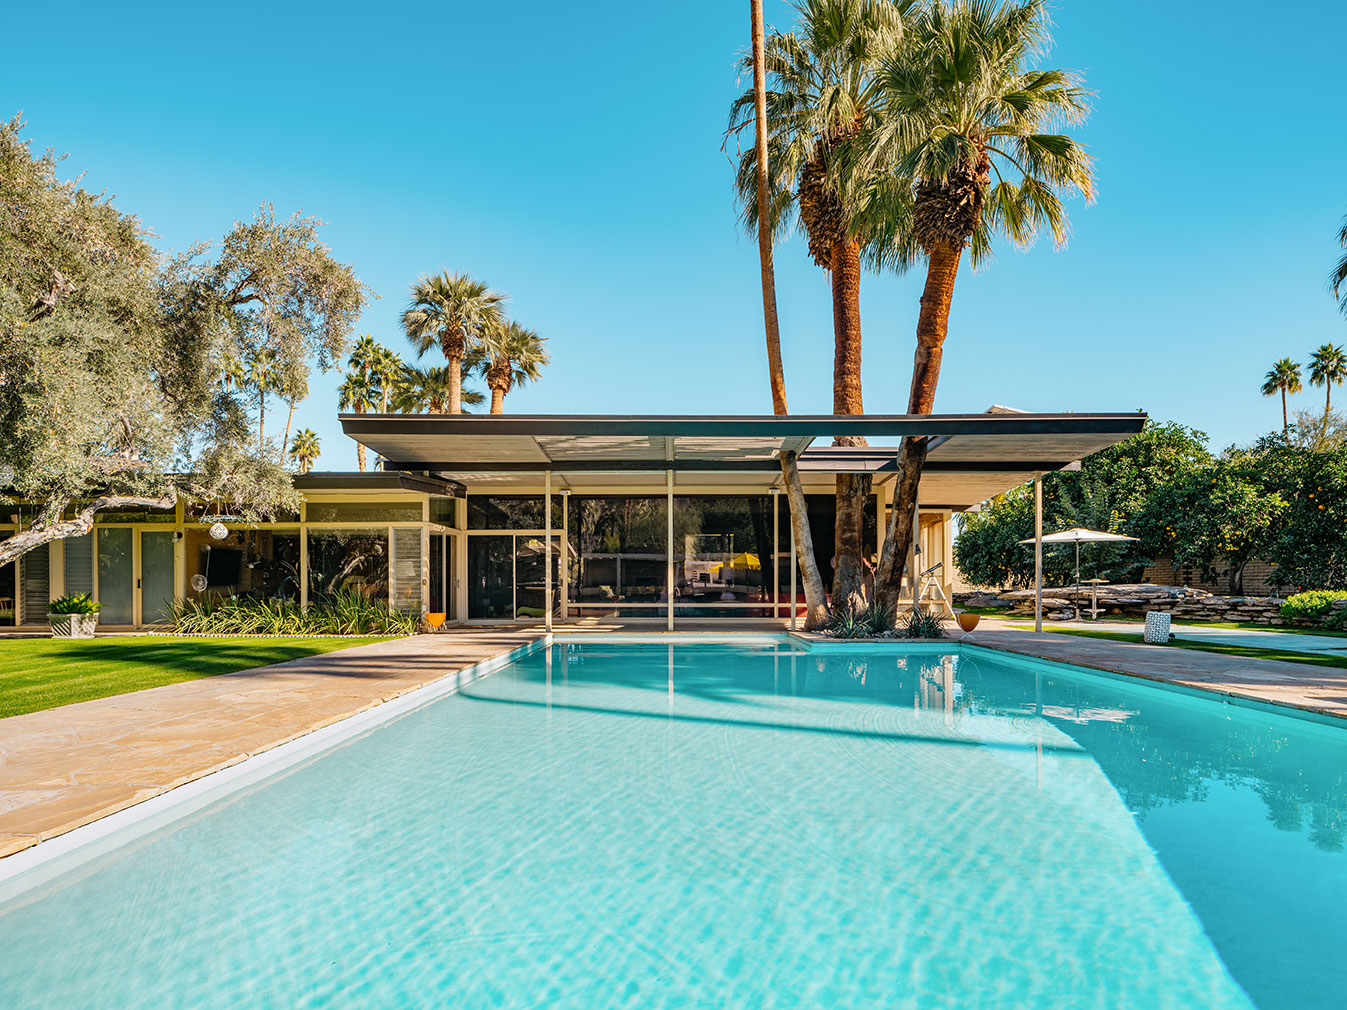 Palm springs modernist icon by e stewart williams lists for Property in palm springs